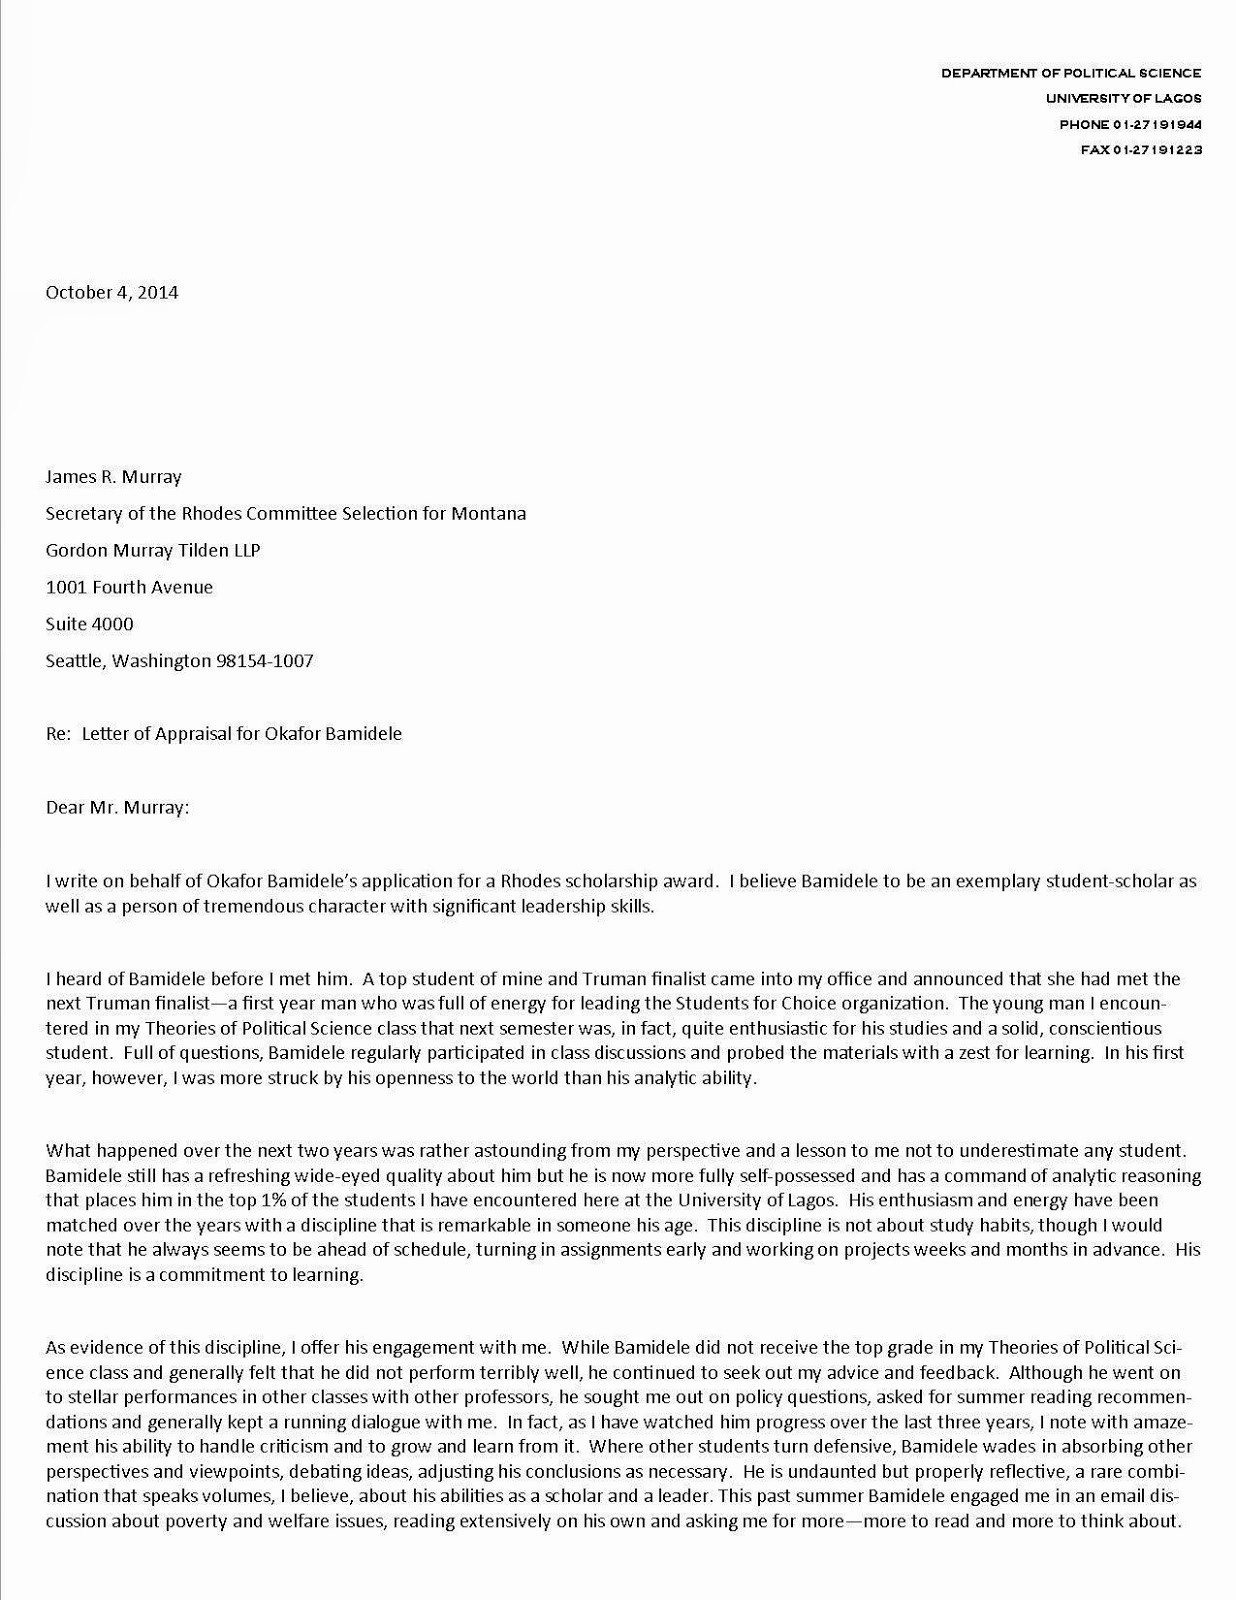 Simple Recommendation Letter for Student Elegant Sample Student Re Mendation Letter for Scholarship